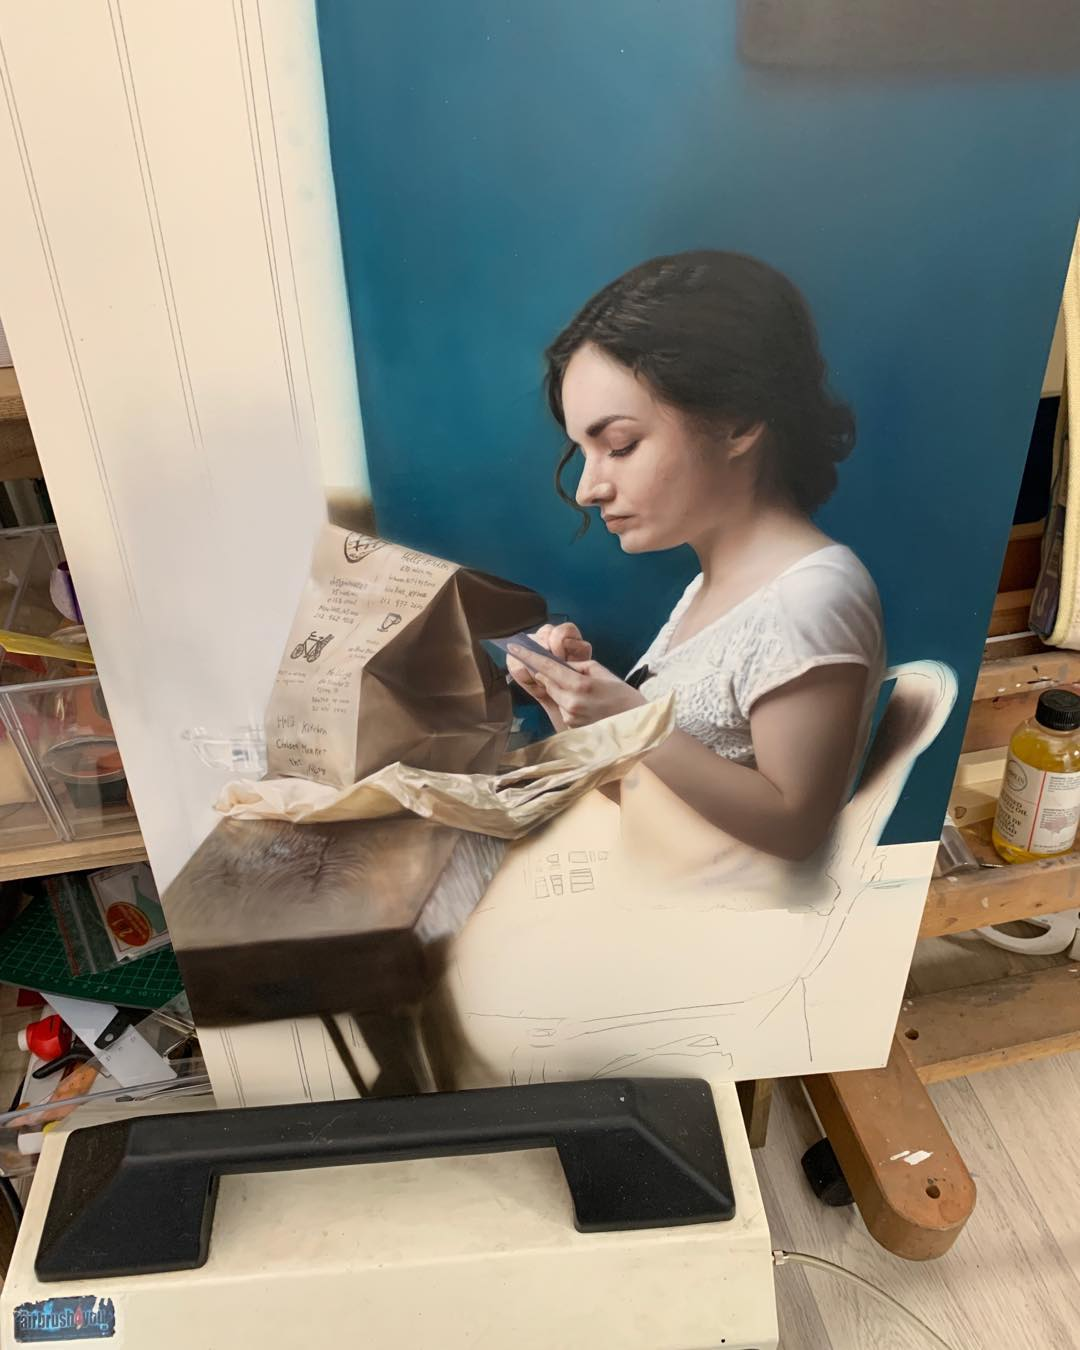 Airbrush Artist Achieves Global Fame For Her Stunning Portraits 9